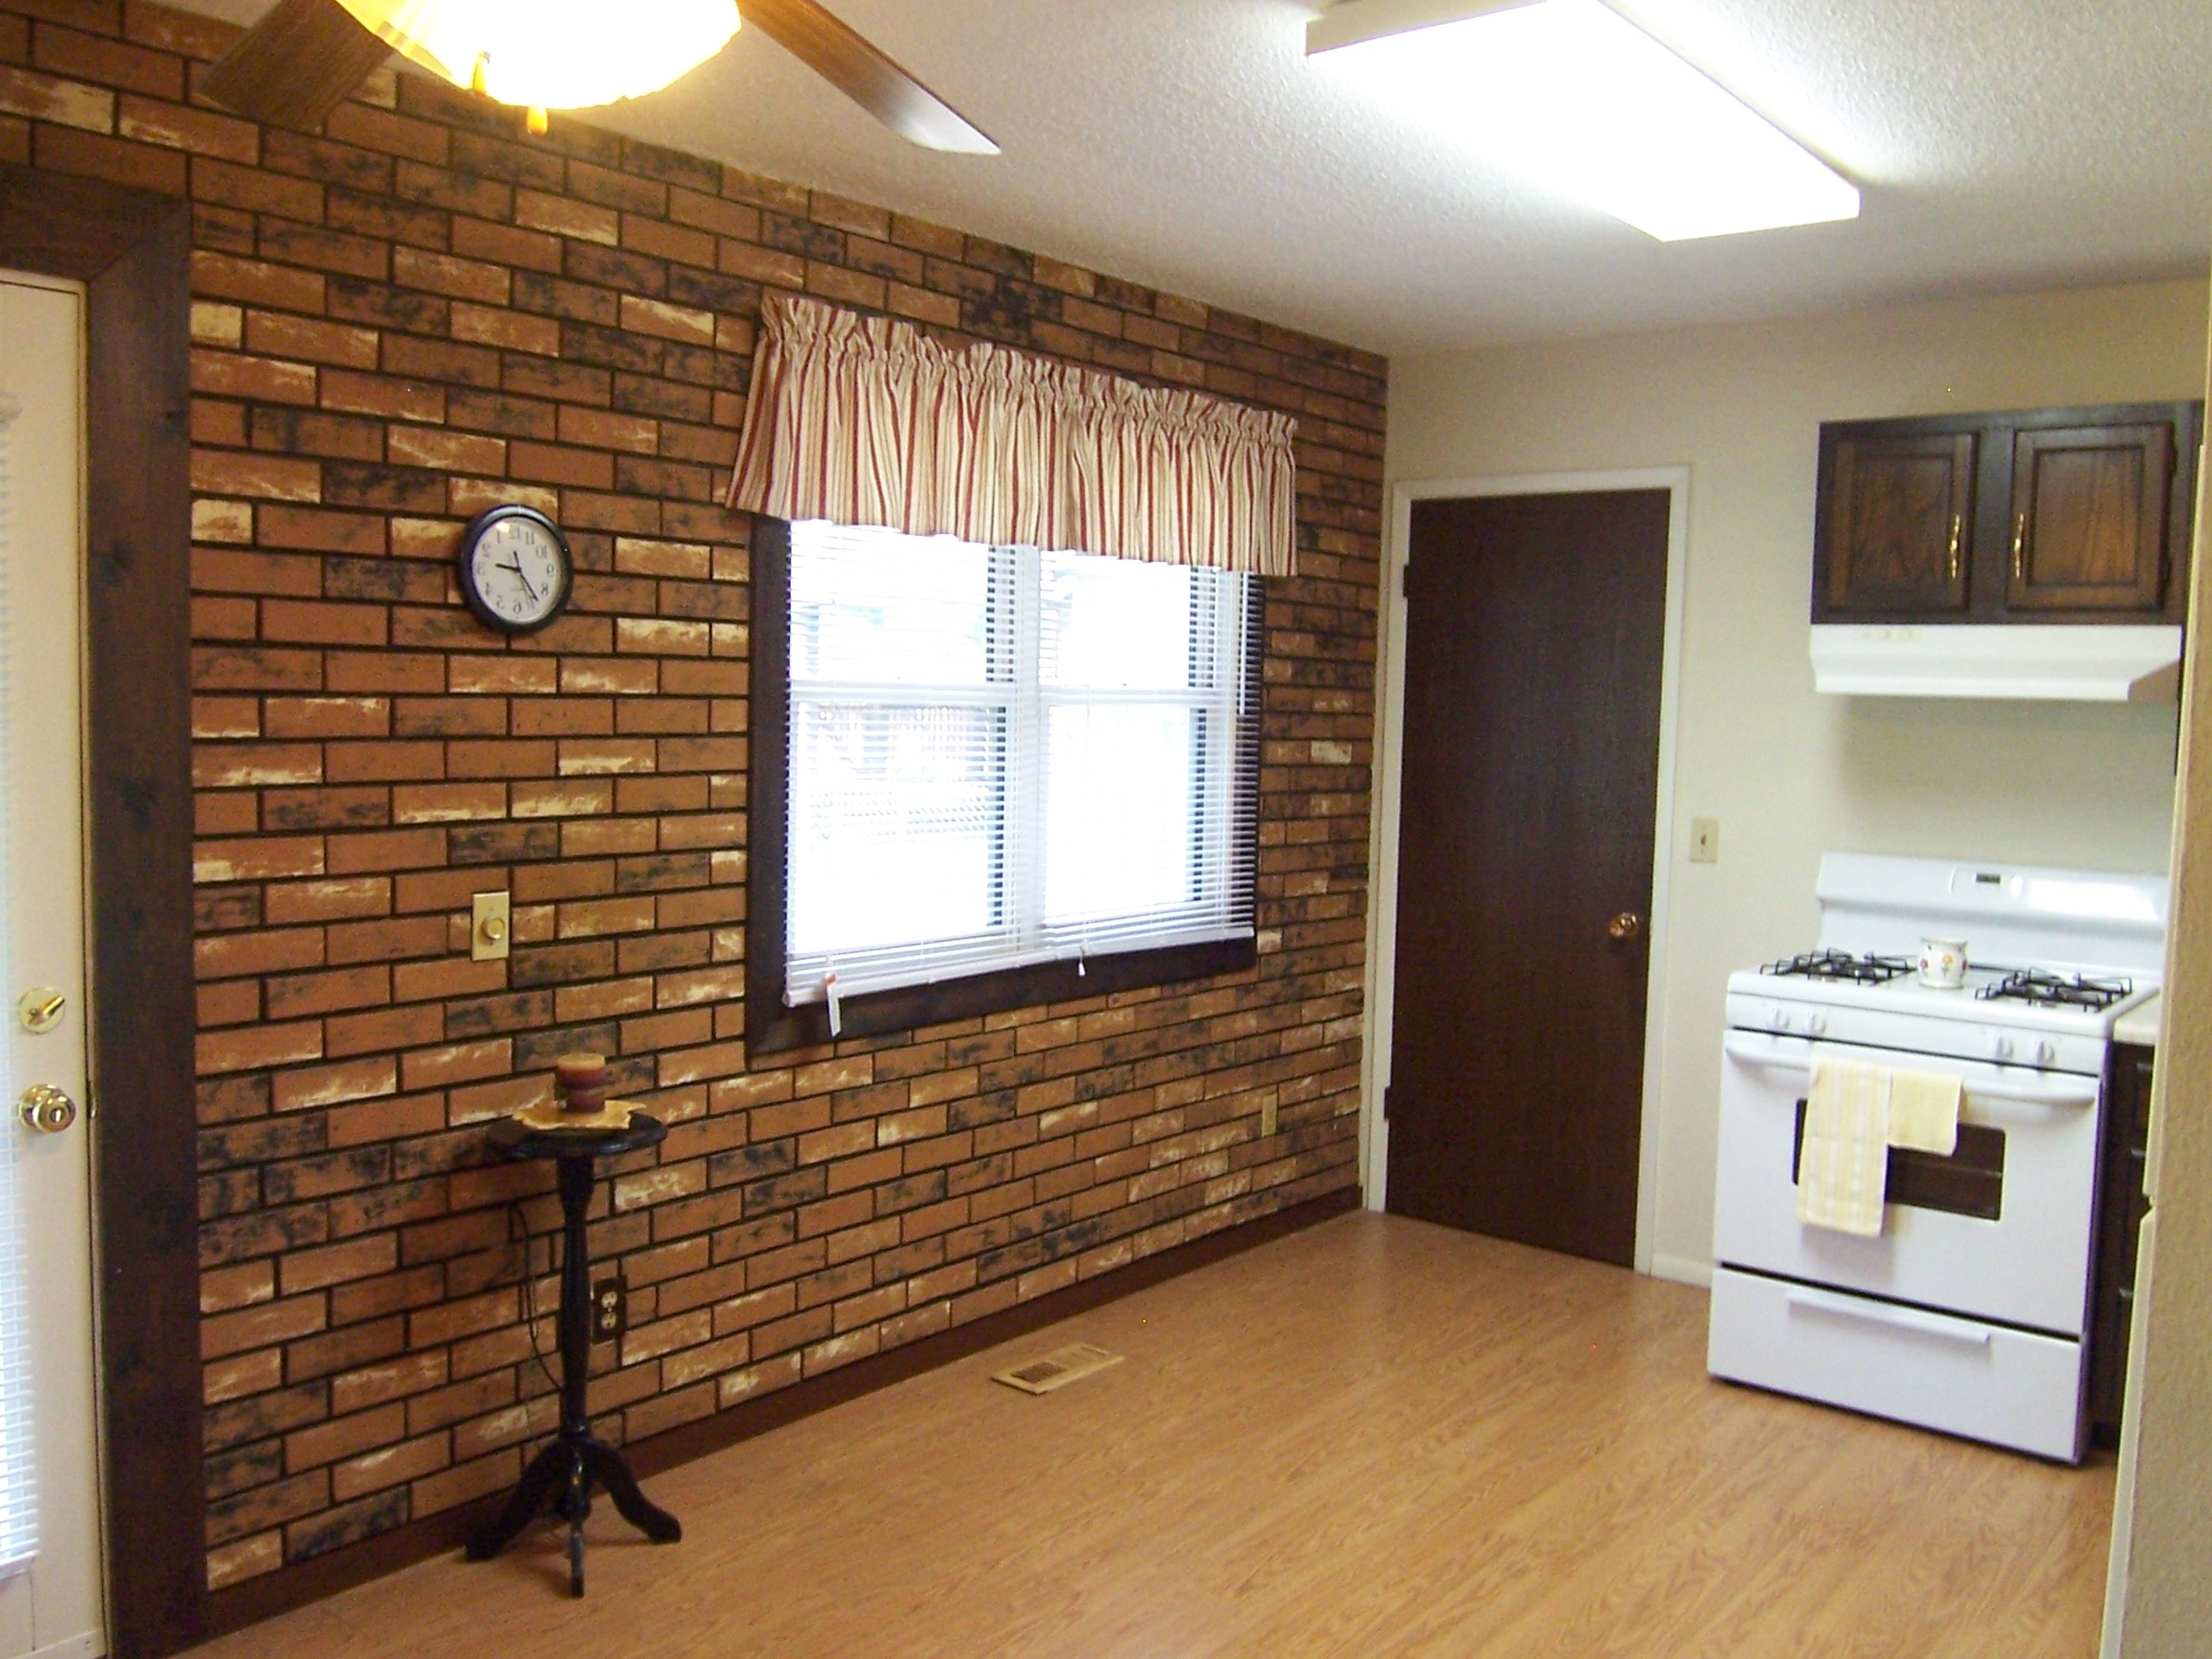 Current Exposed Brick Wall Accents For Exposed Brick Wall Ideas Home Design And Interior Decorating (View 3 of 15)